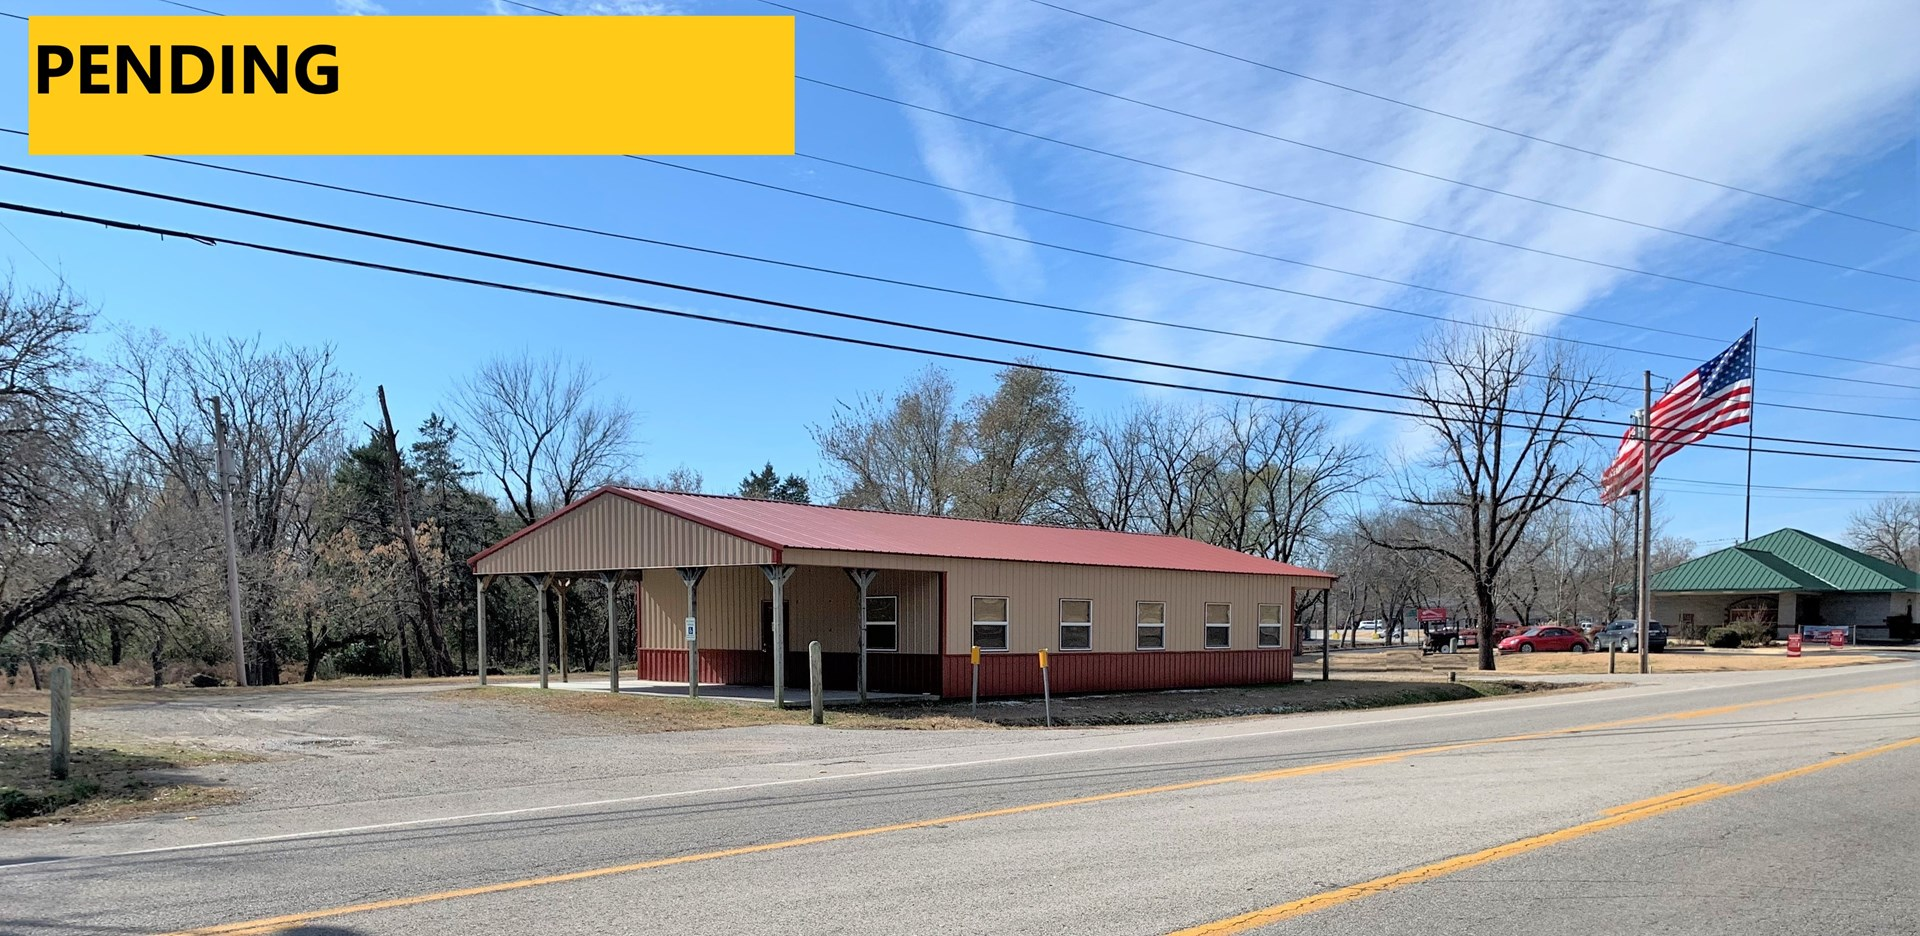 COMMERCIAL OFFICE BUILDING FOR SALE IN MARION COUNTY AR